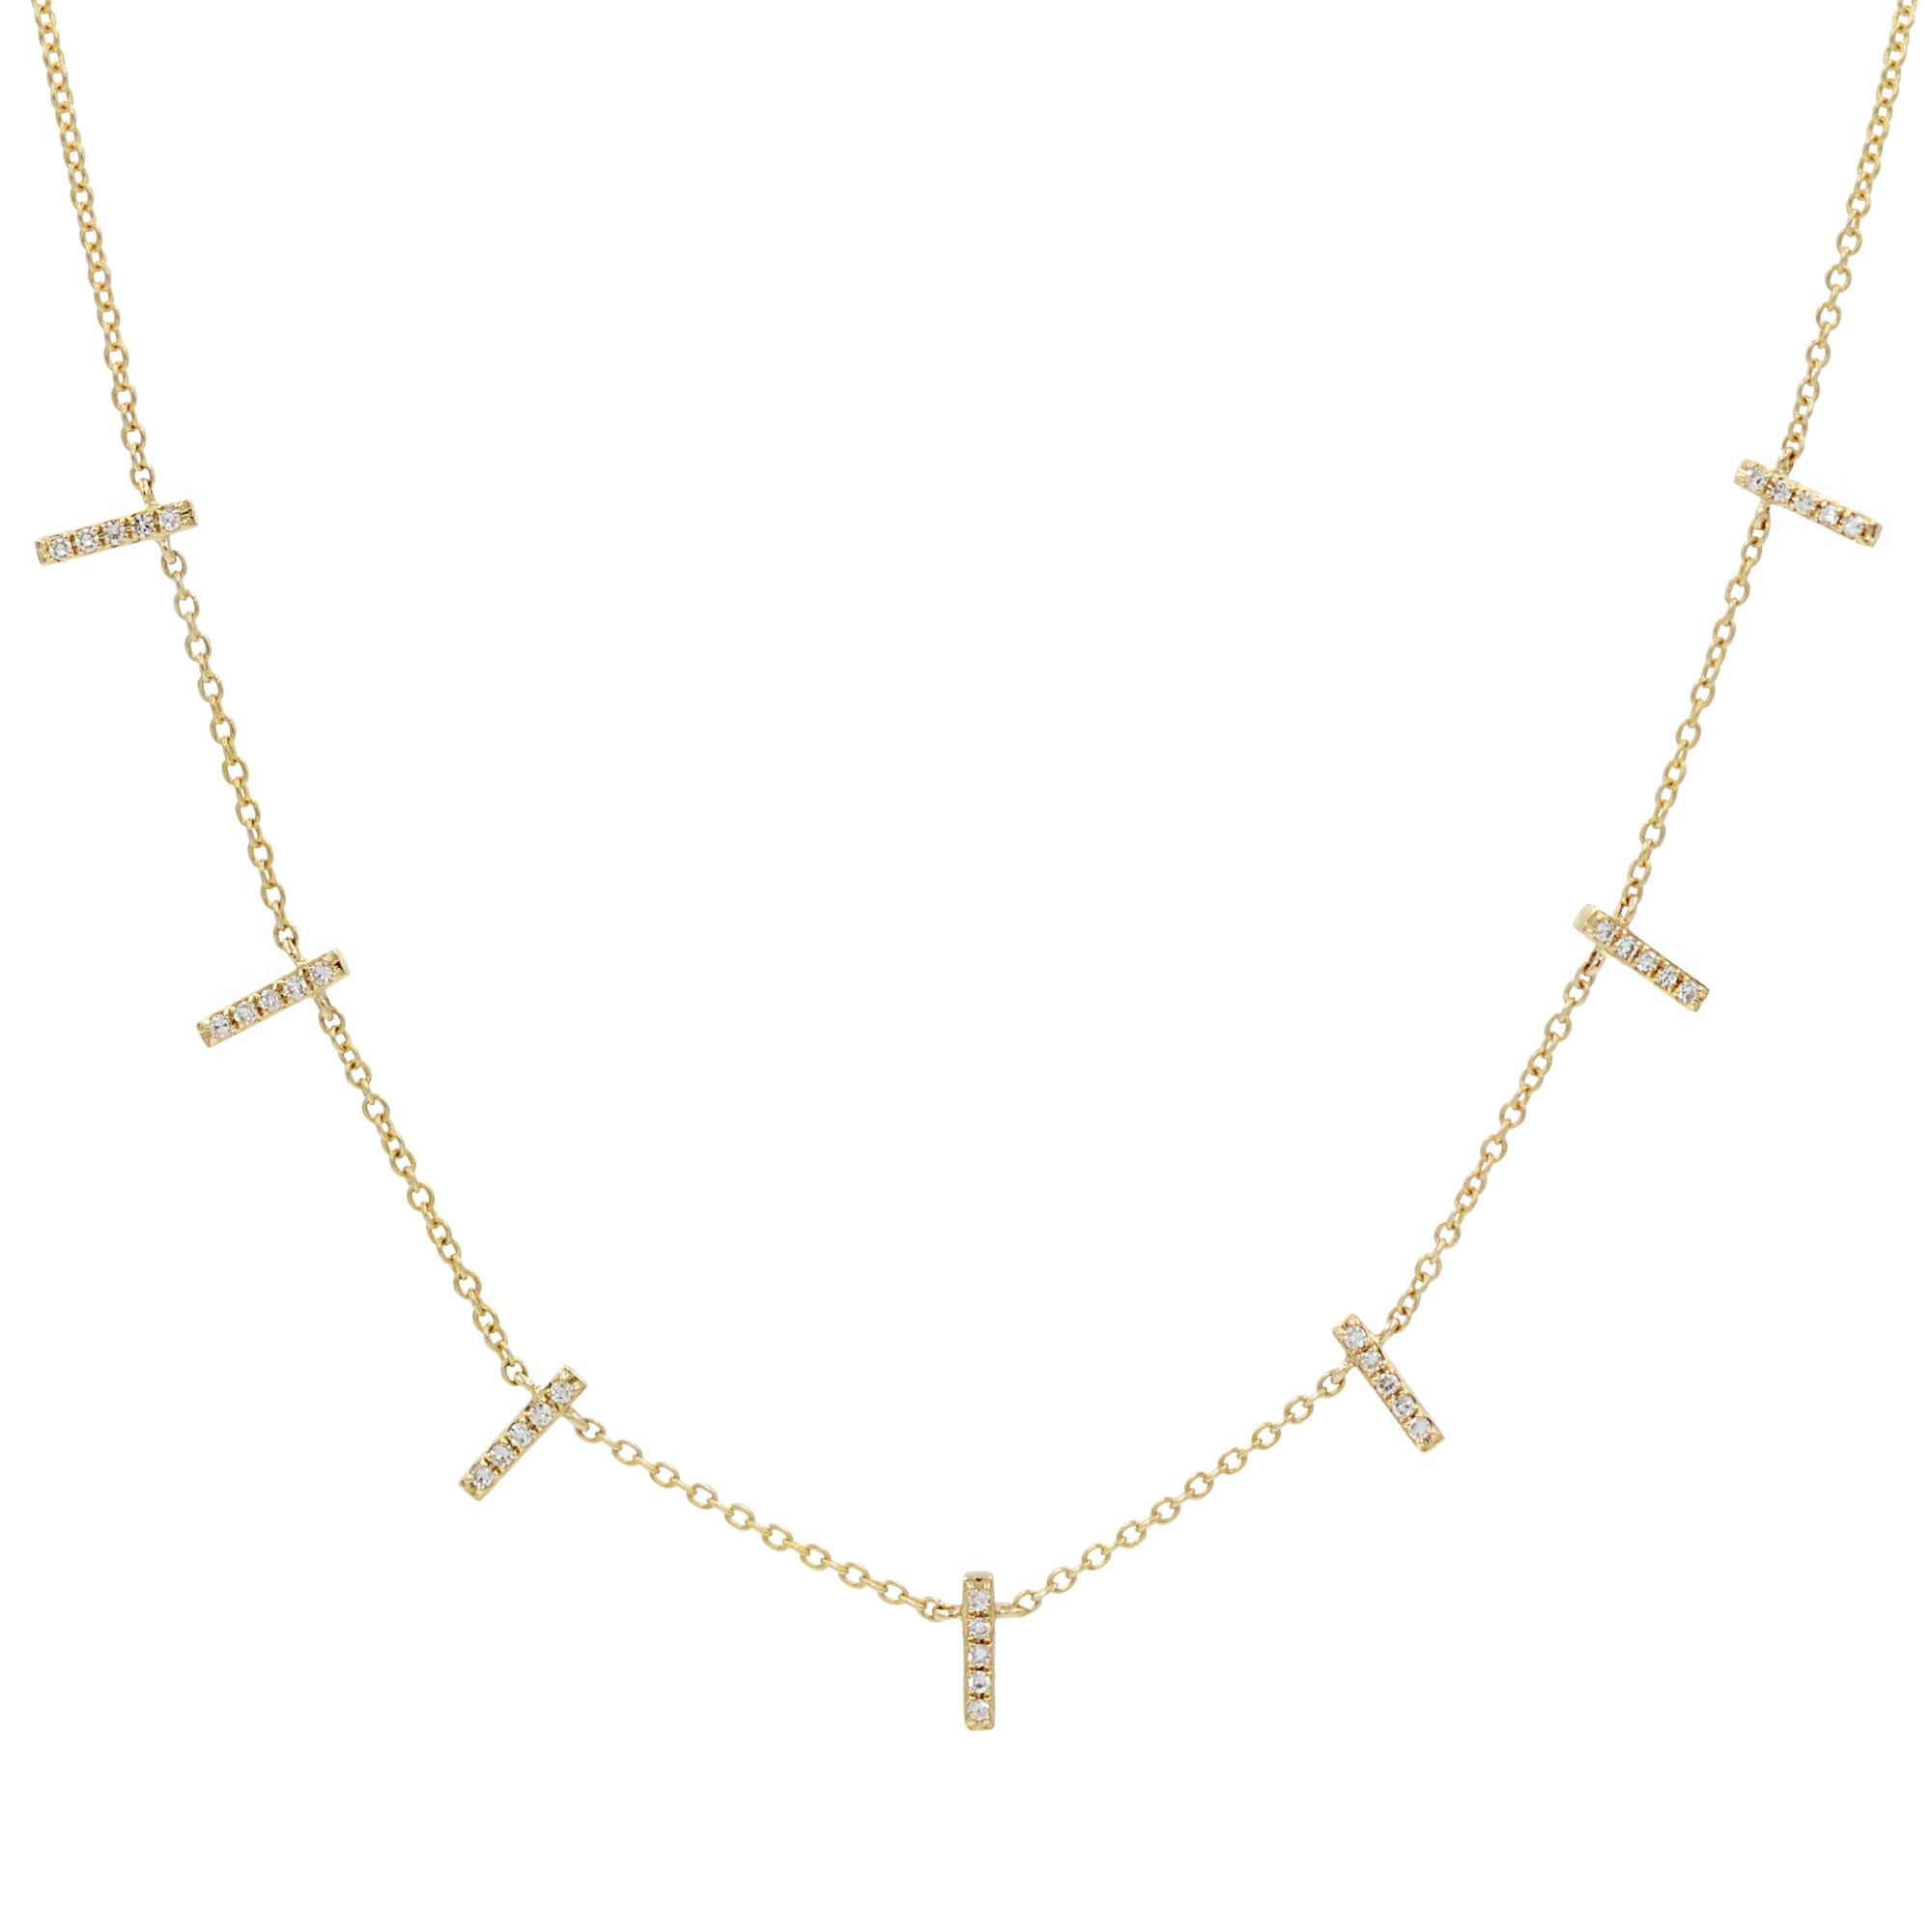 Diamond Stick Choker Necklace in 14k Gold